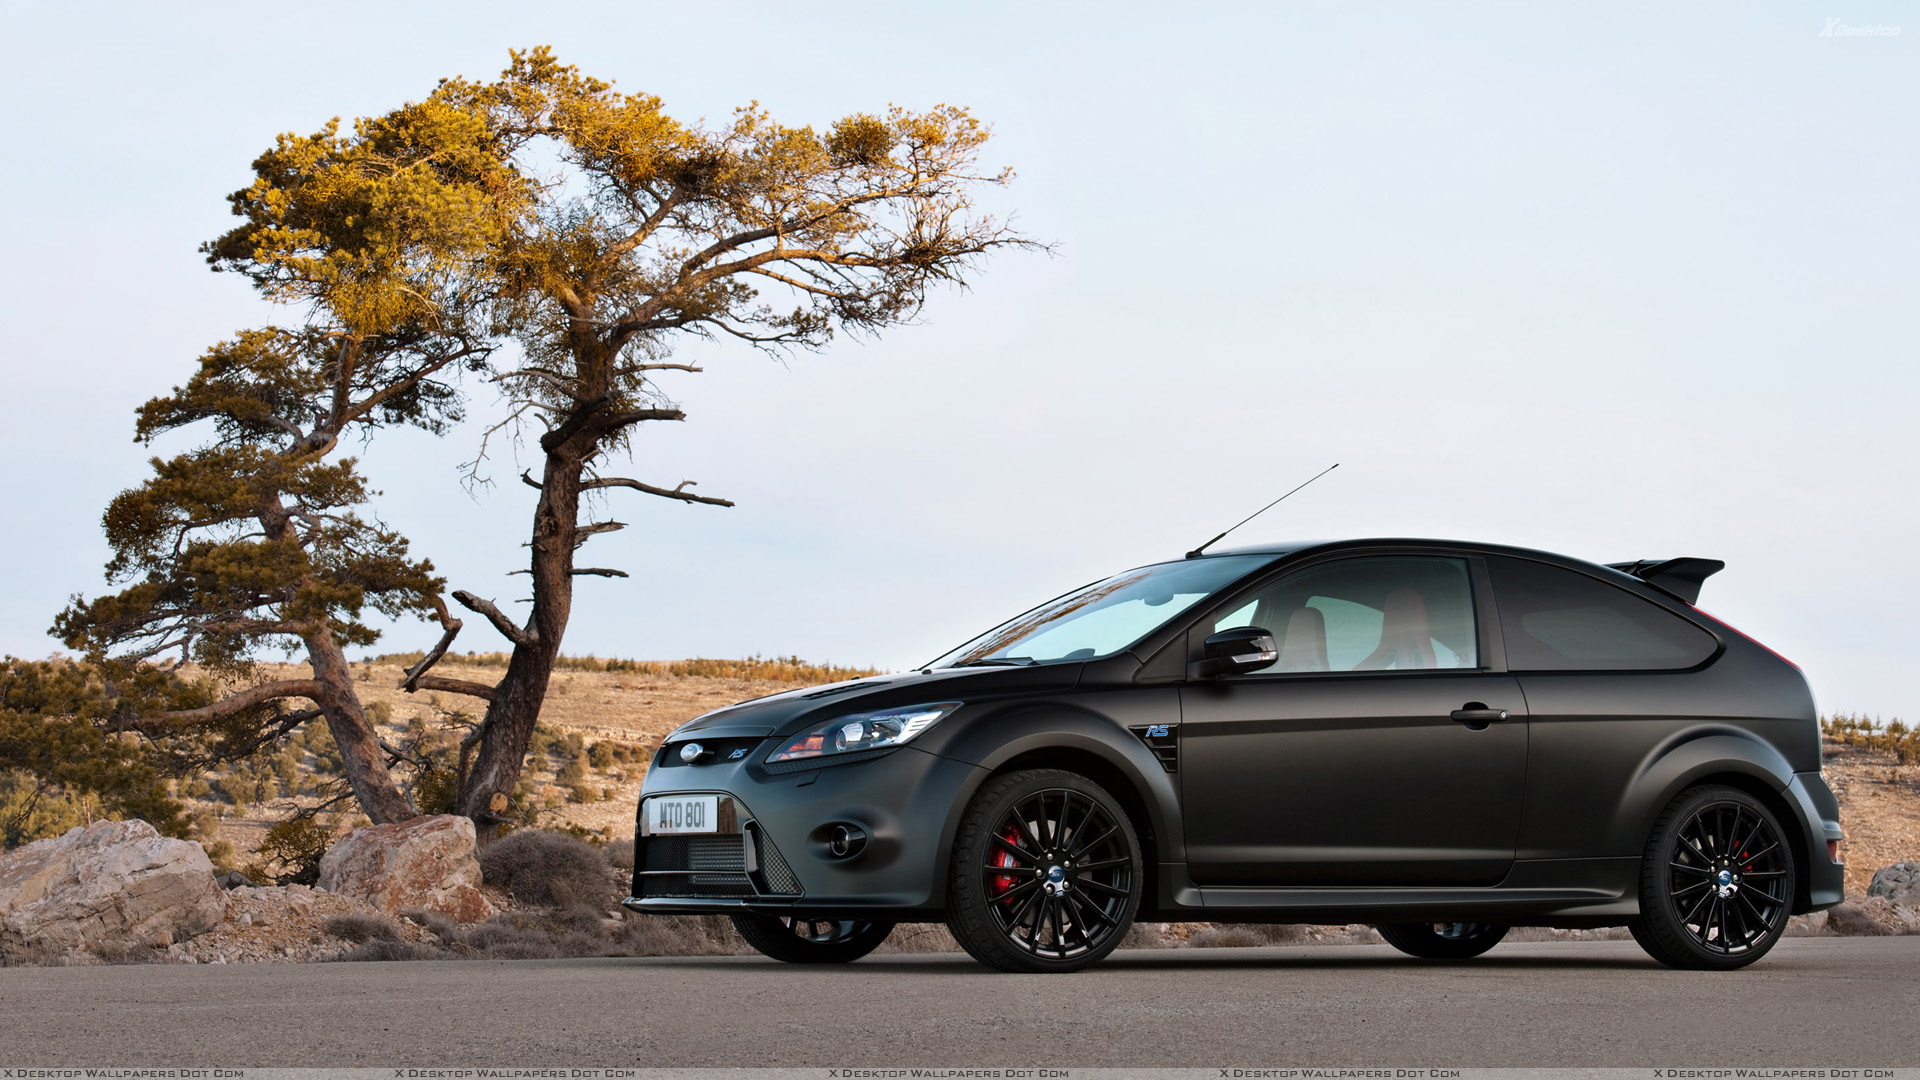 Ford Focus Rs500 Side Pose In Black Wallpaper